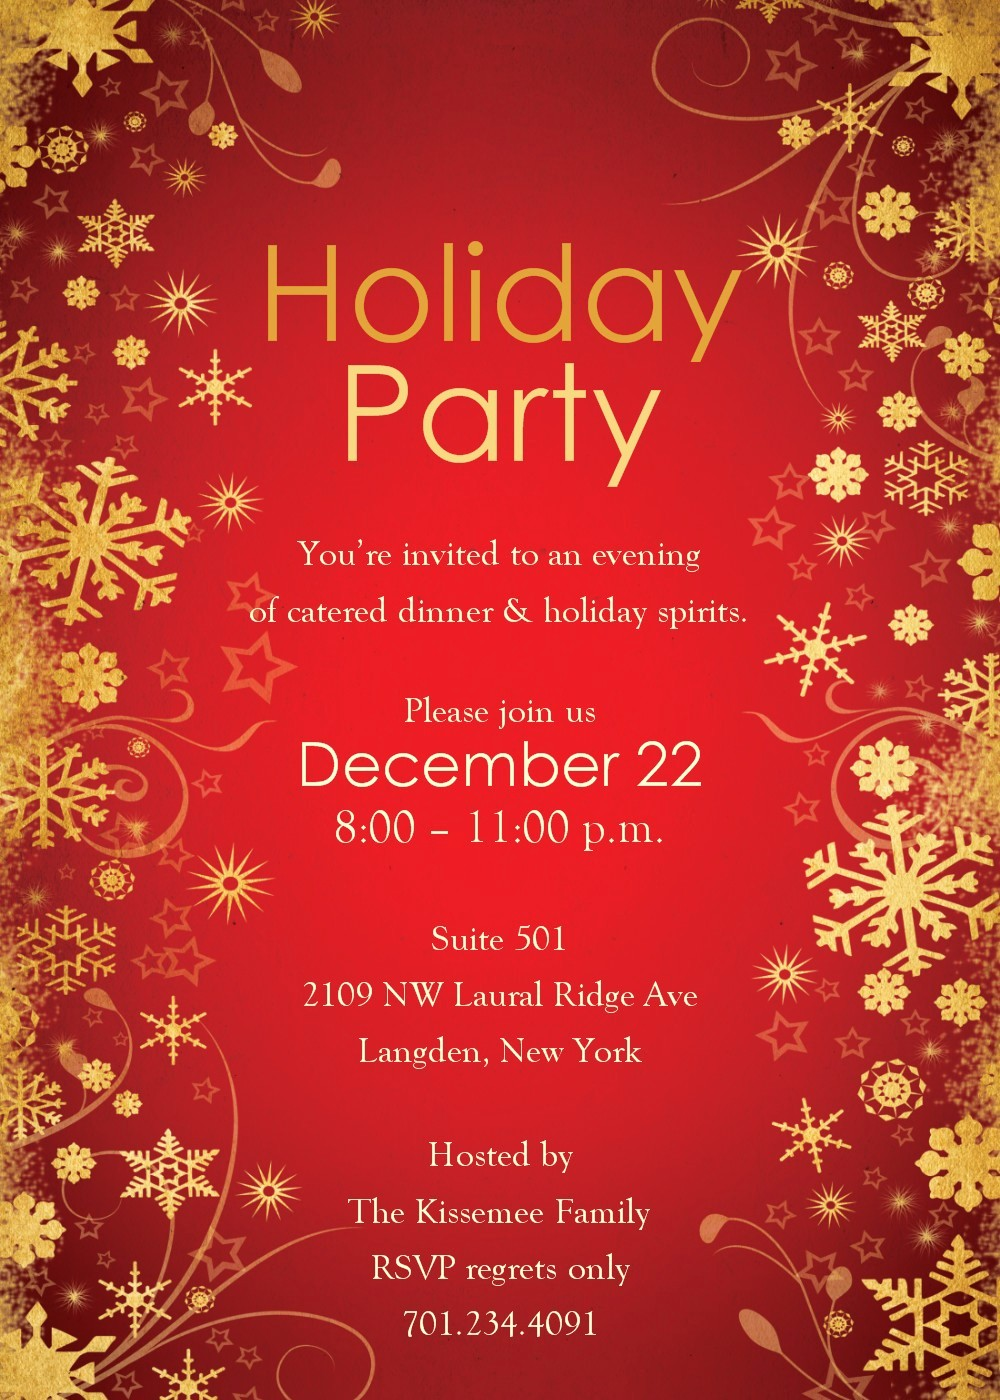 Christmas Party Invitations Free Template Lovely Free Holiday Party Invitation Templates